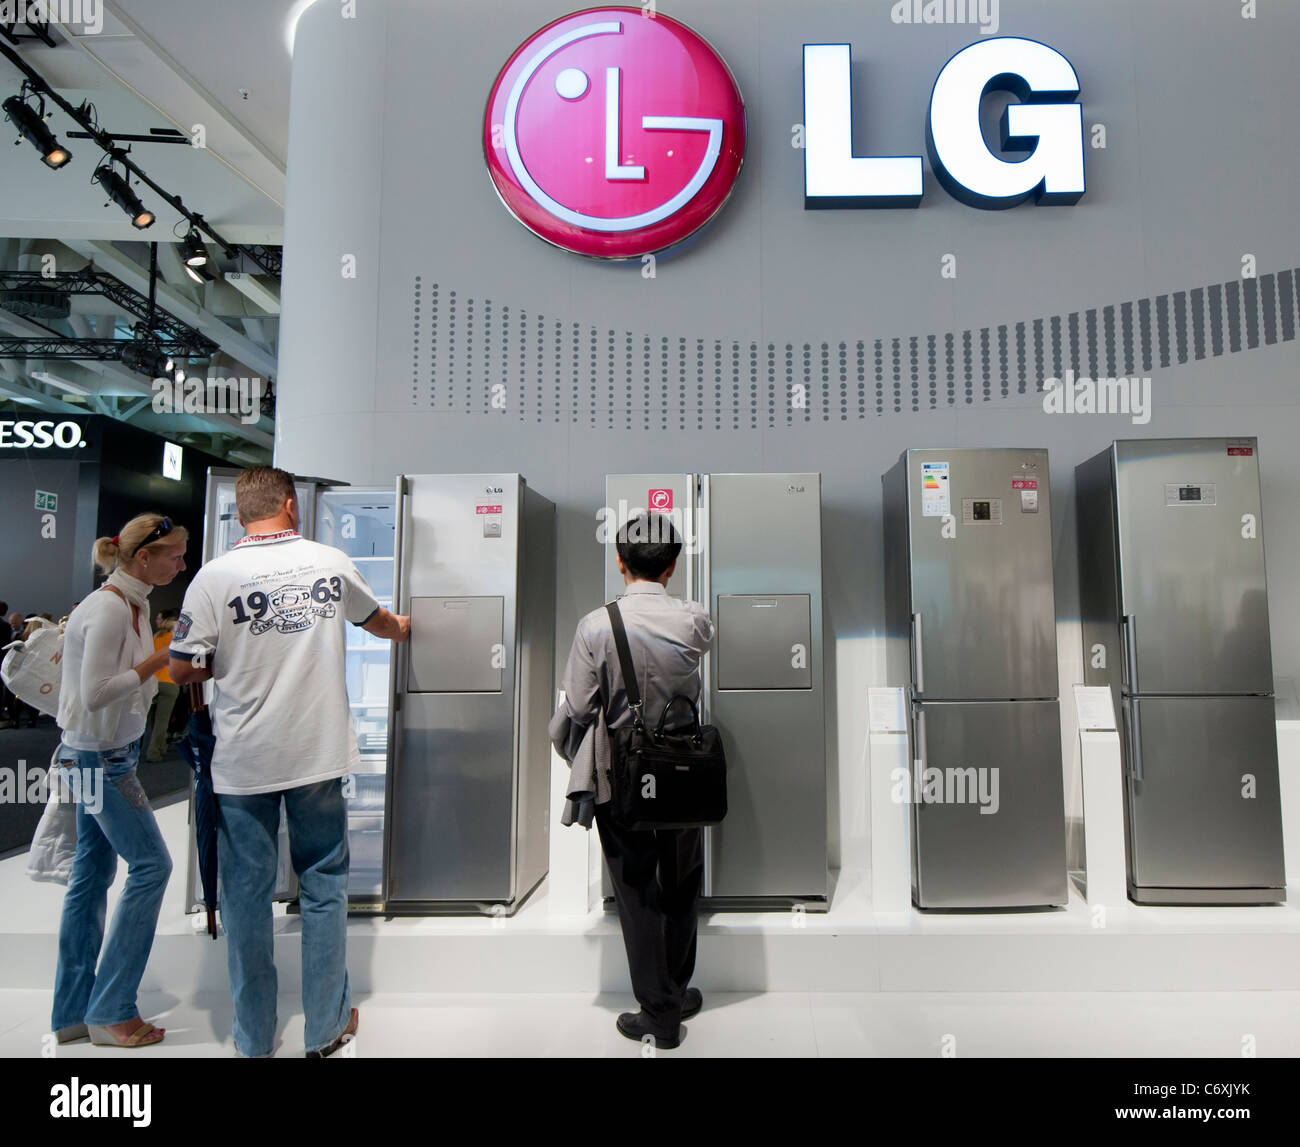 LG display at IFA consumer electronics trade fair in  Berlin Germany 2011 - Stock Image